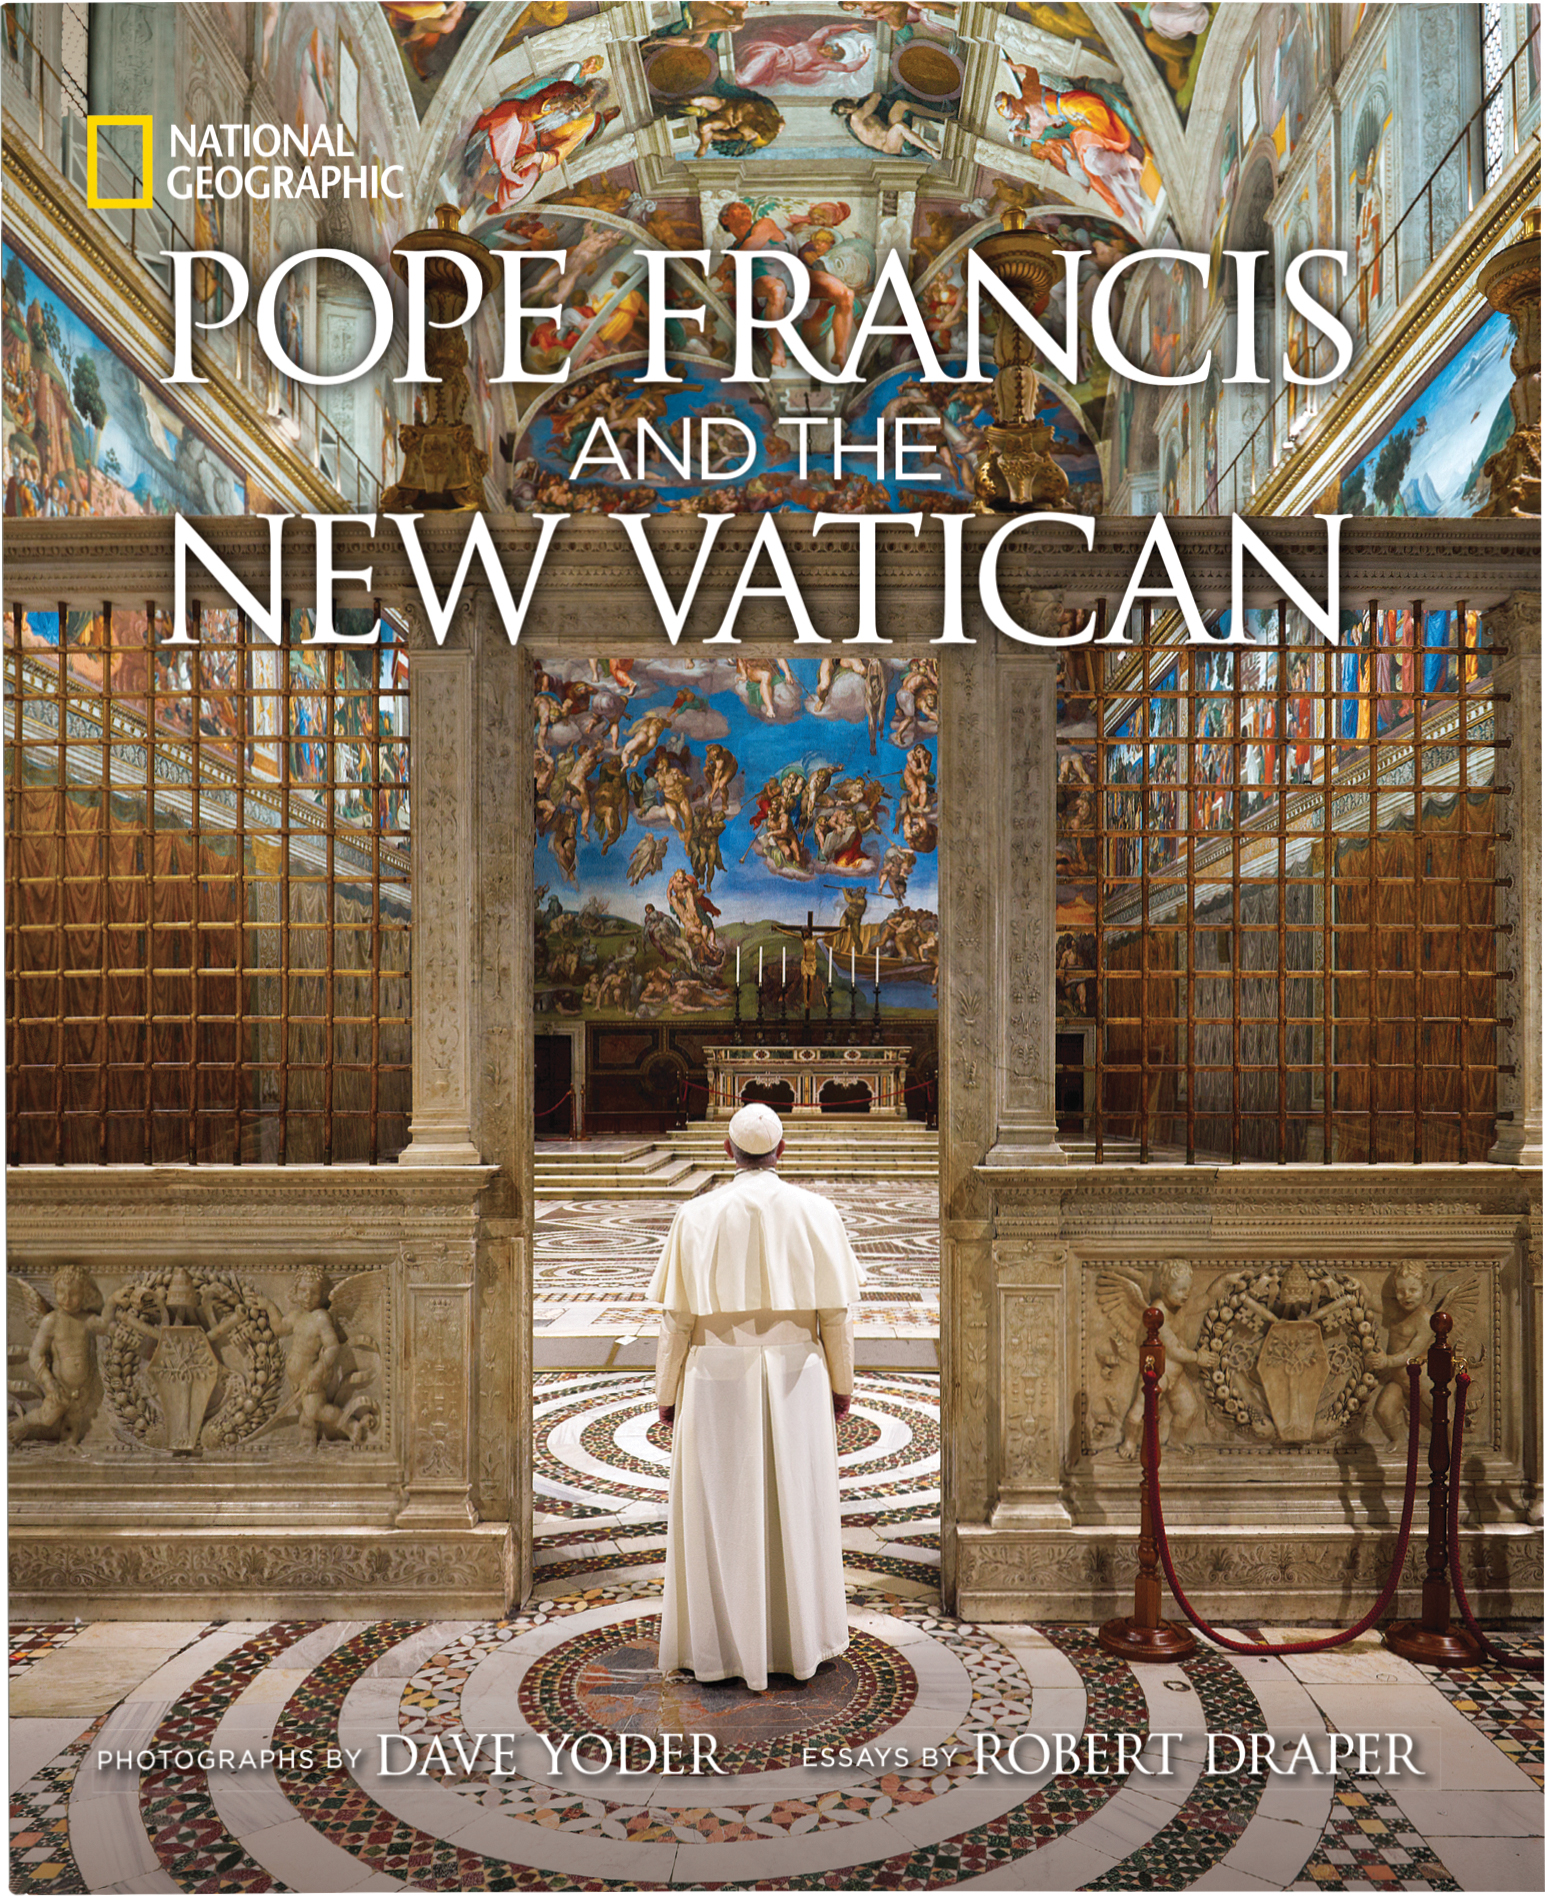 Stunning Pope Francis photos in Nat Geo book